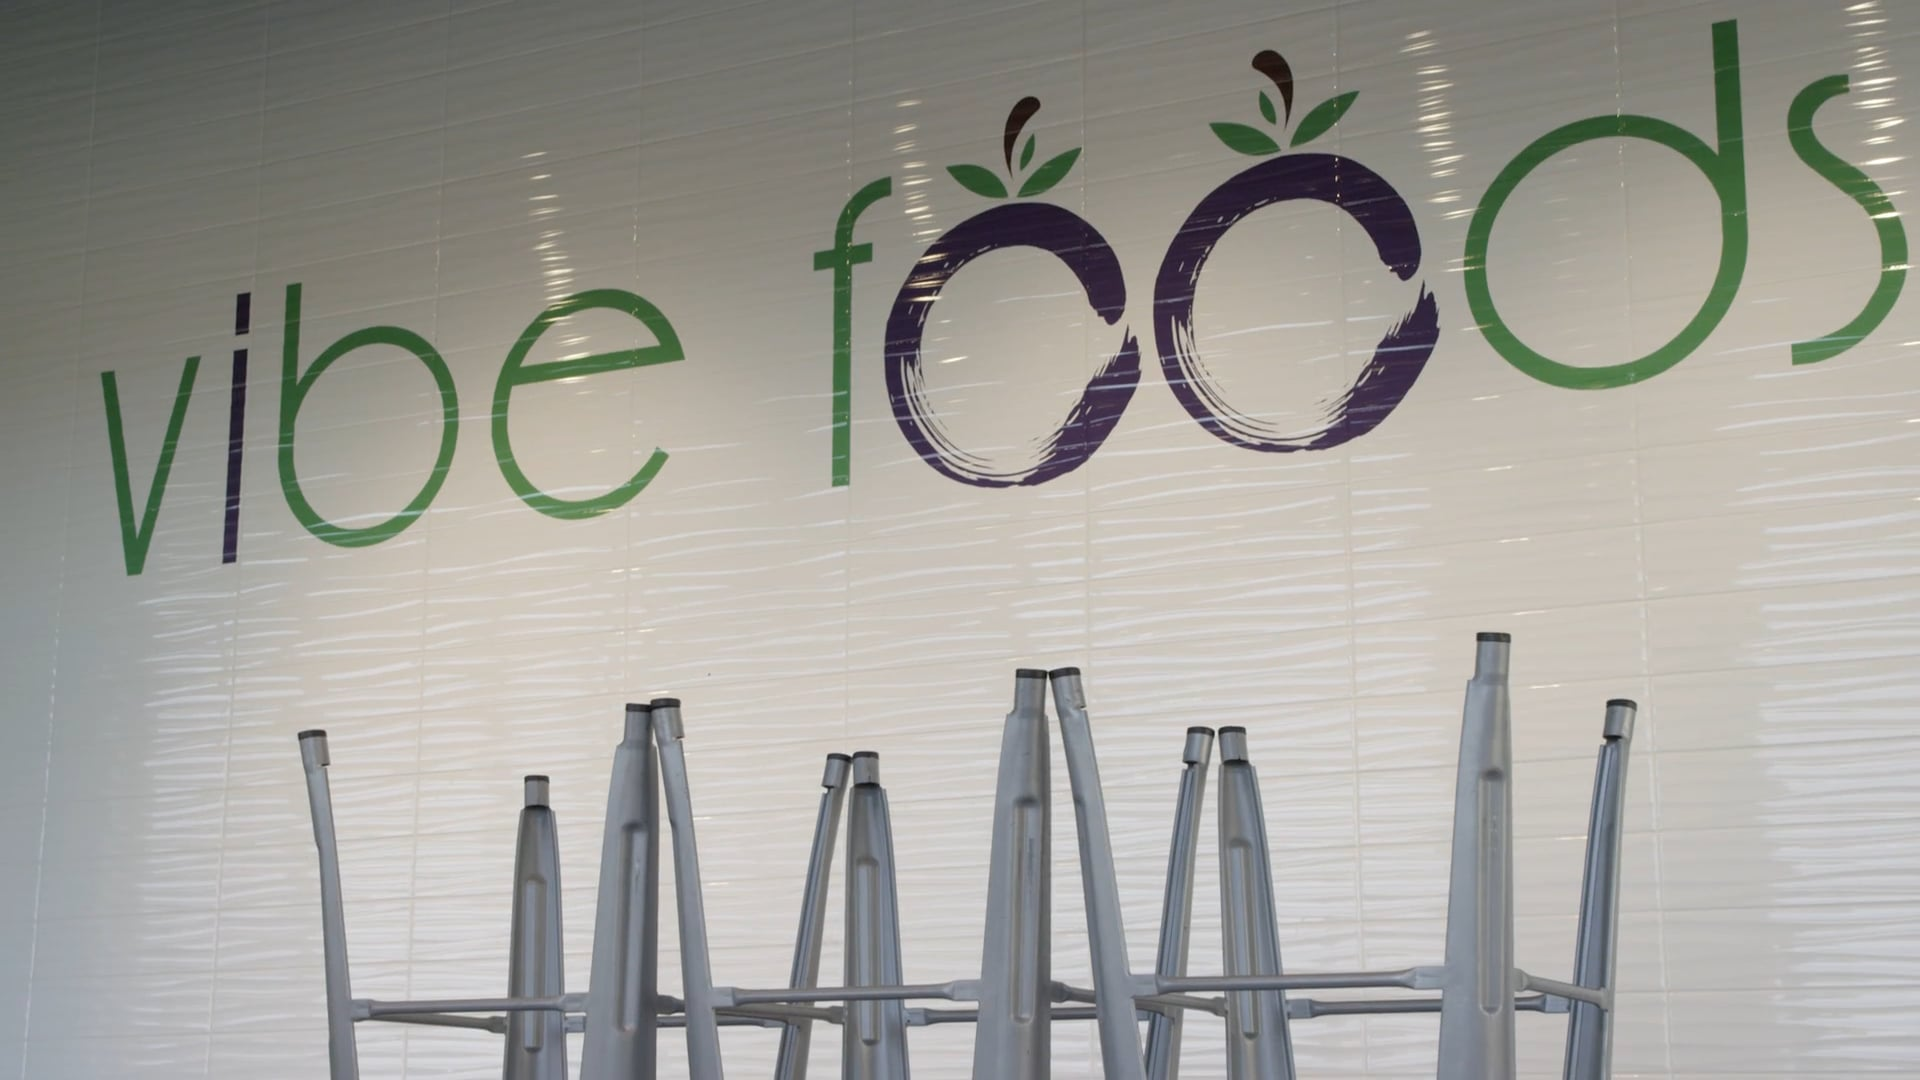 About Vibe Foods